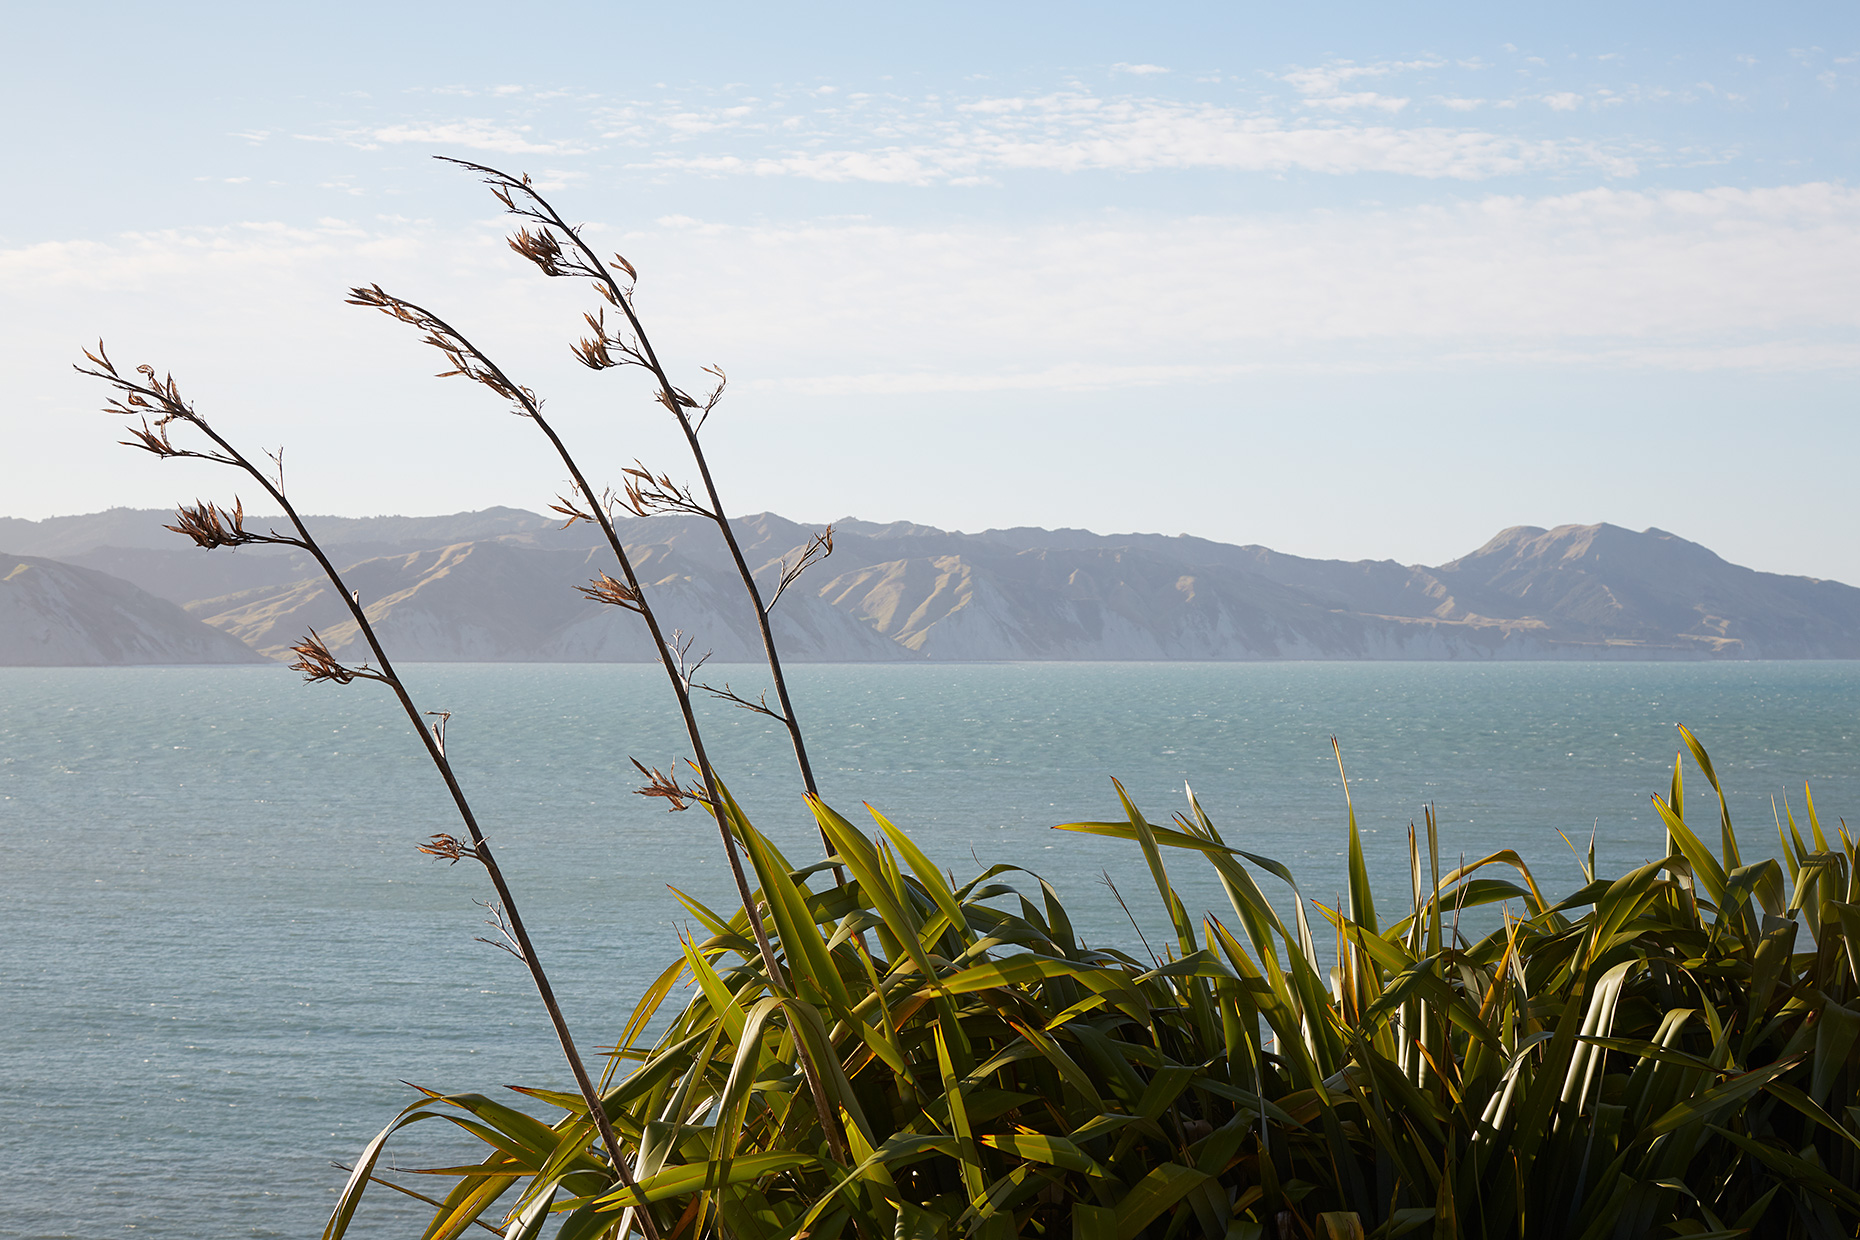 Flax bushes in flower, Mahia, New Zealand, 2020